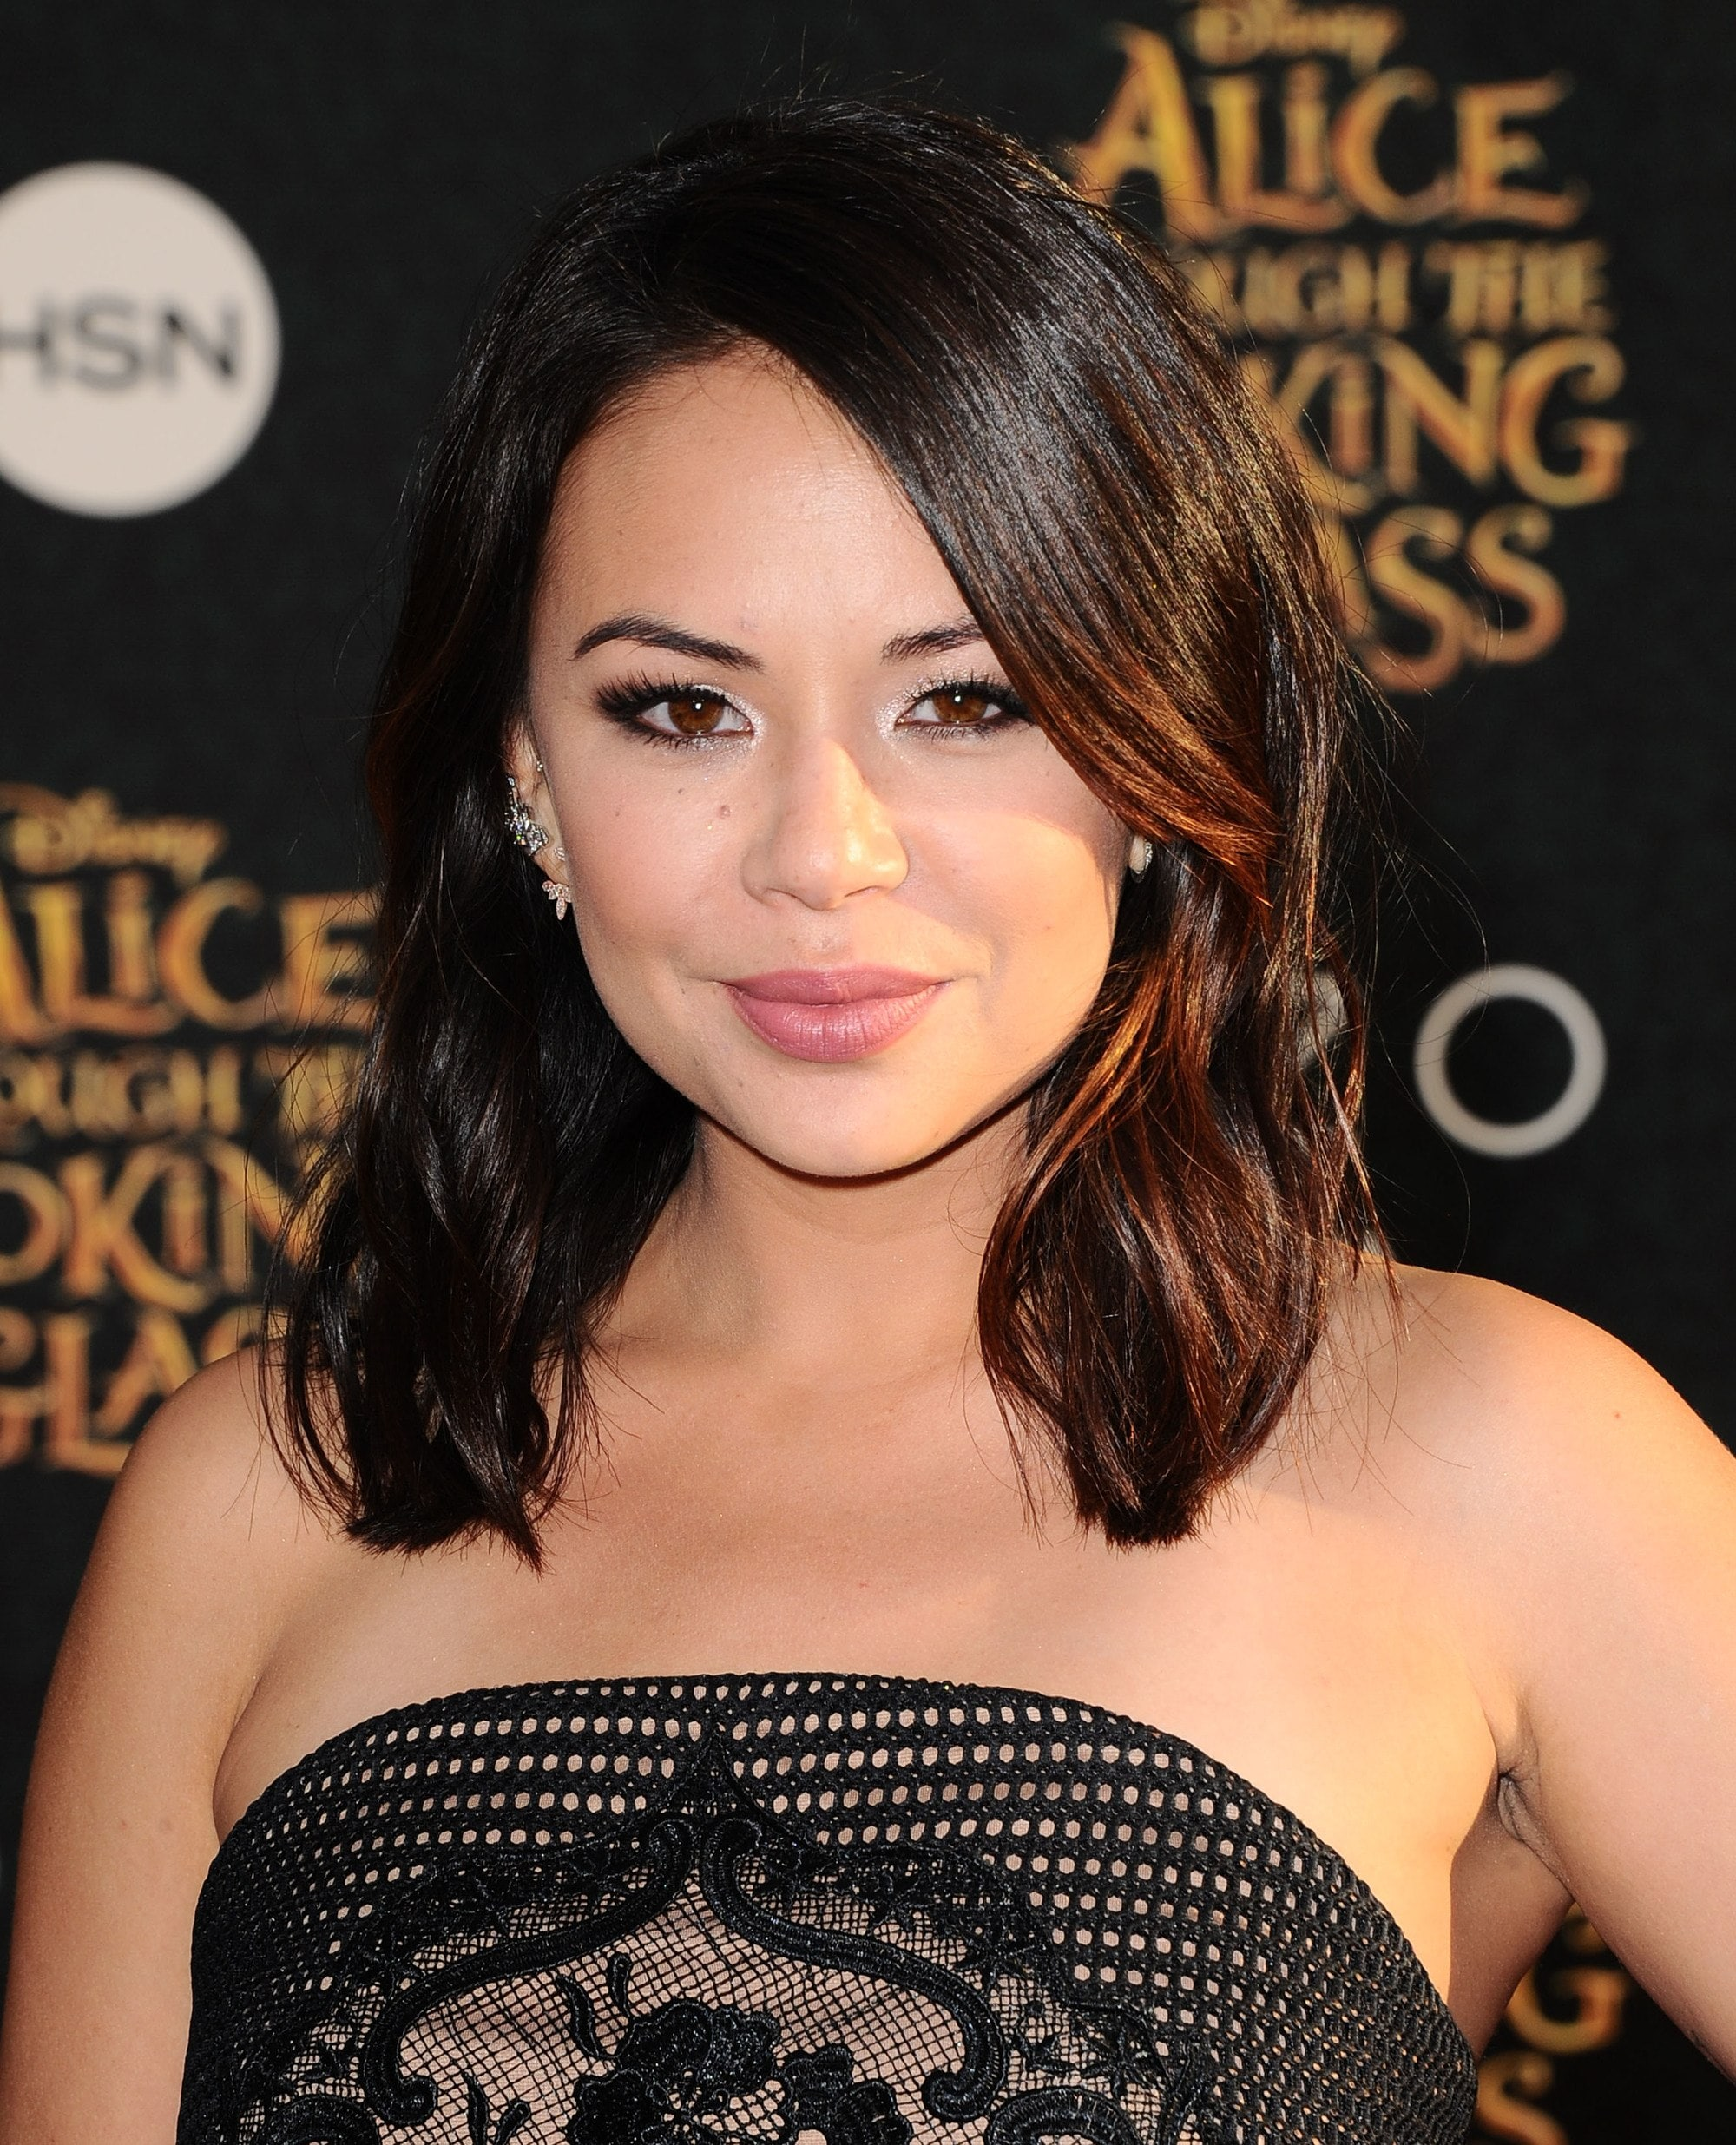 Medium hairstyles for thick hair: Janel Parrish with her dark brown hair in a glossy medium length cut with a sweeping side fringe